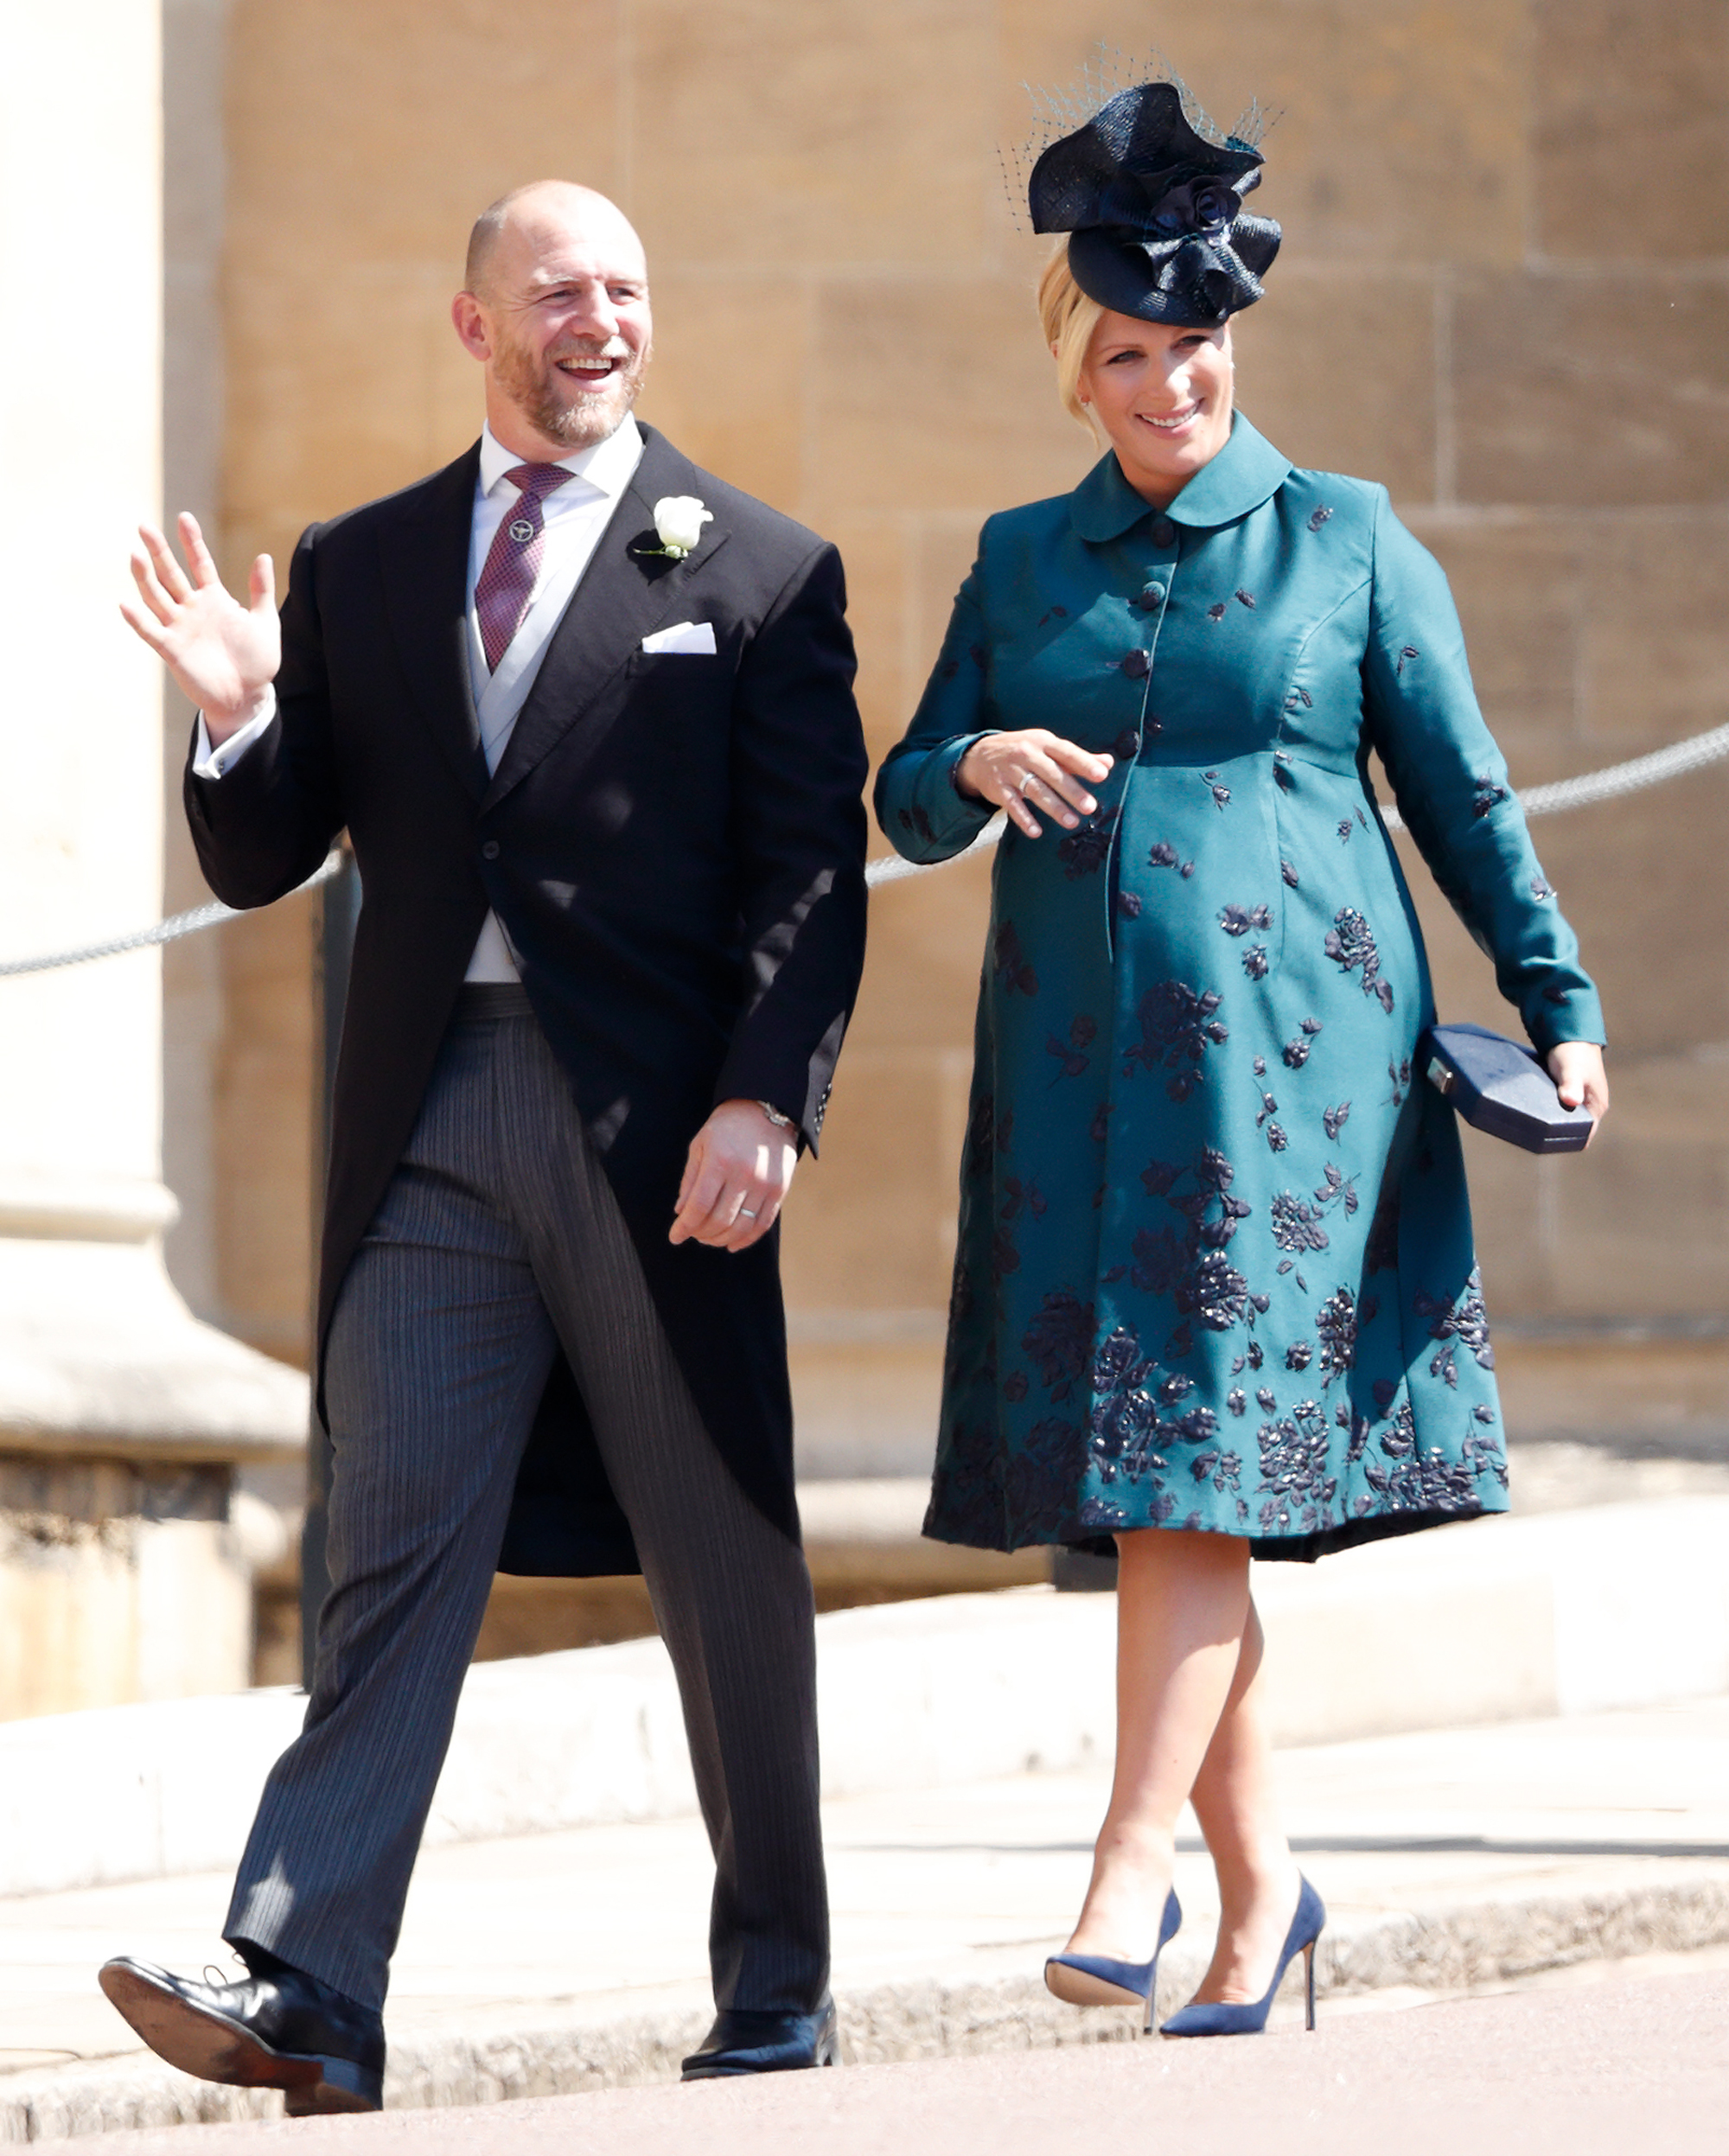 The Royal Family Just Welcomed a New Baby Girl